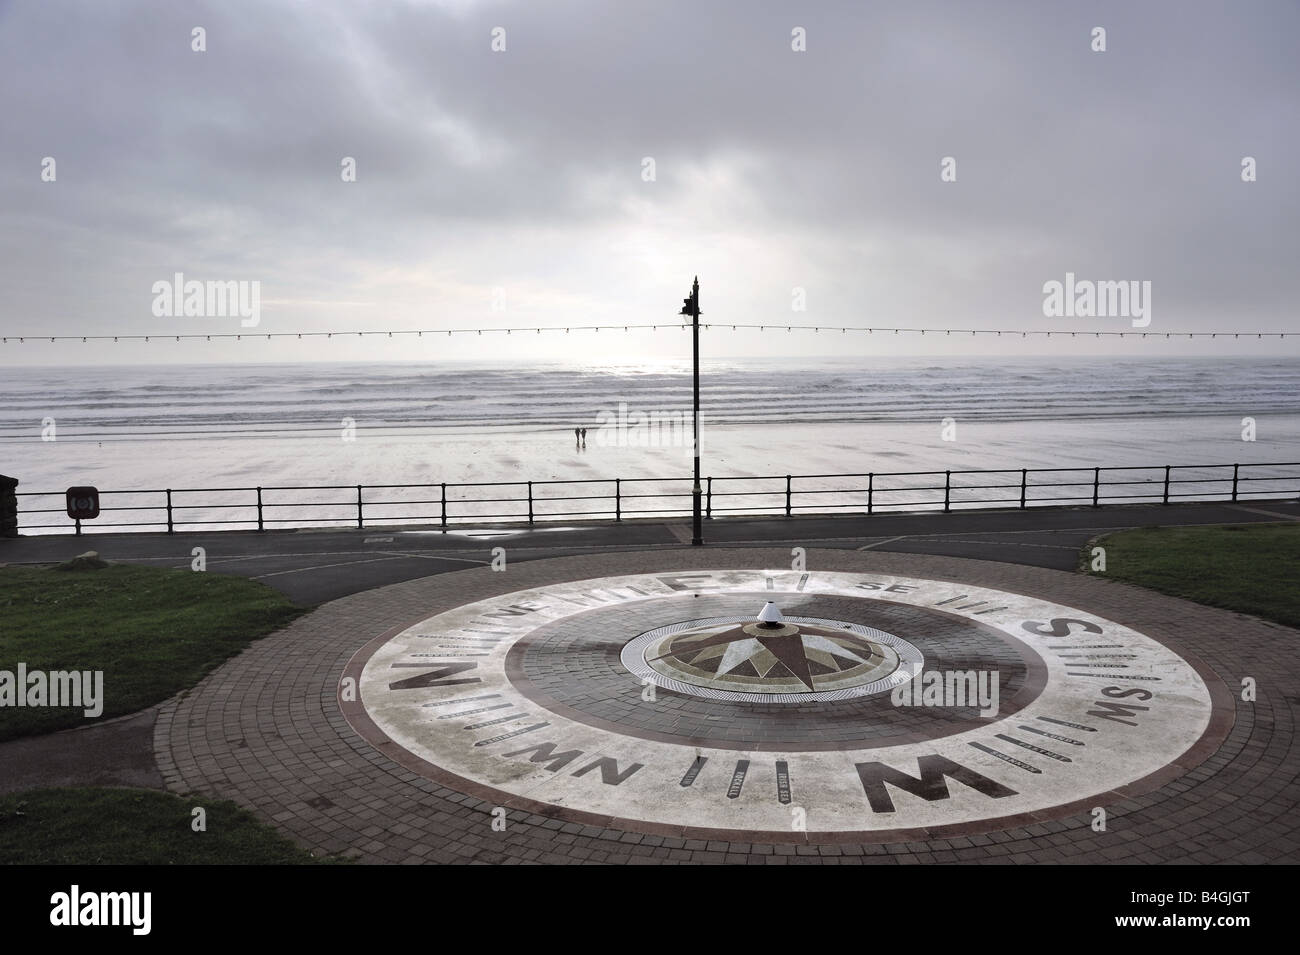 Early morning scene with compass, showing shipping forecast areas, on seafront at Filey, Yorkshire - Stock Image